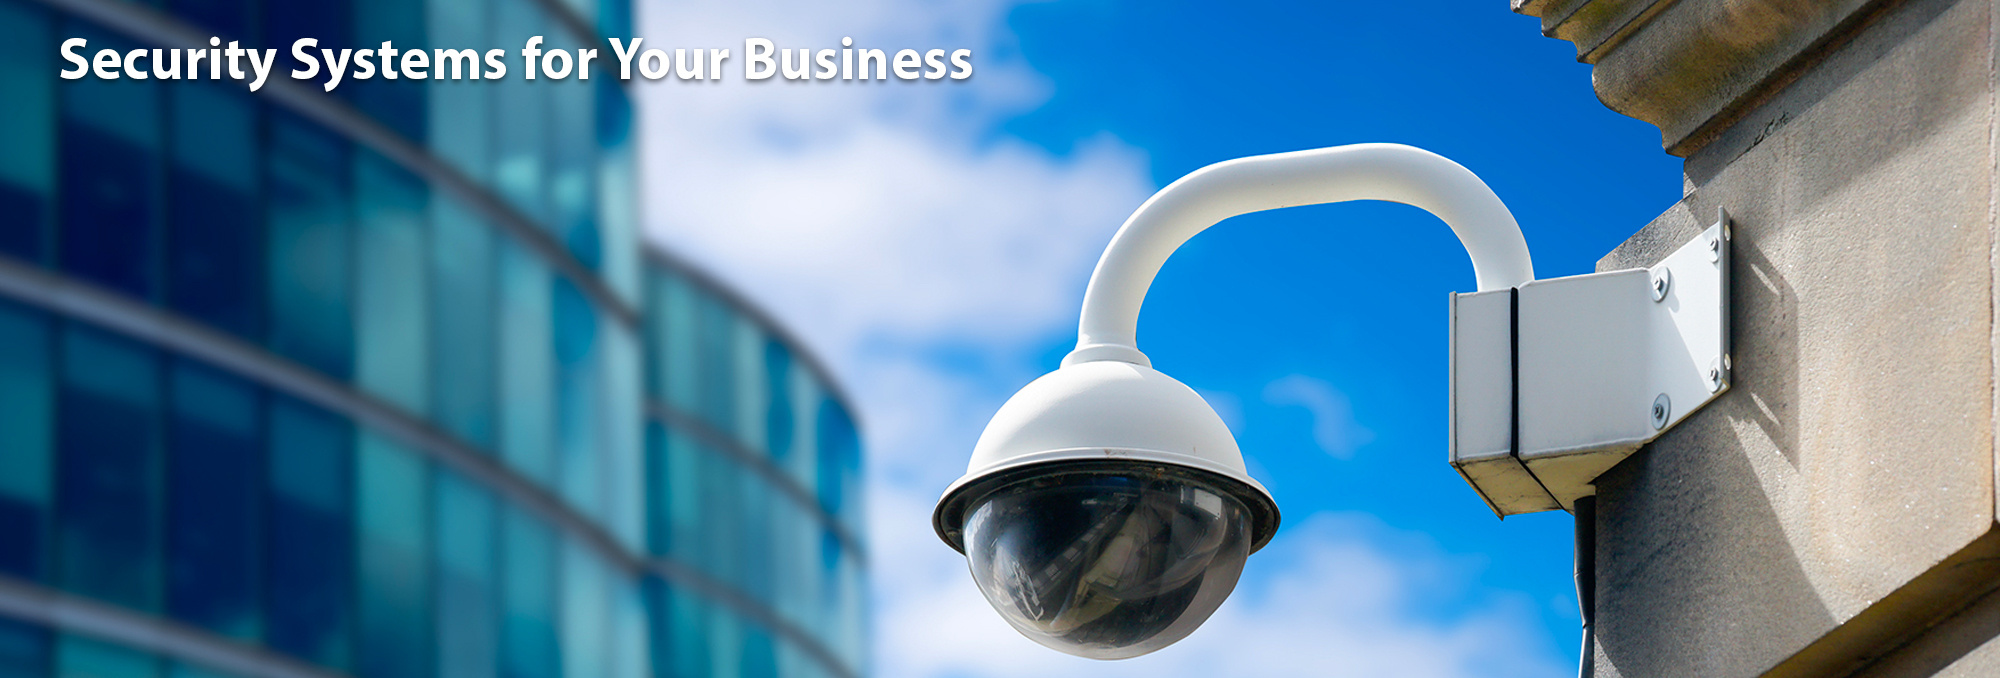 Advanced Electronic Systems - Security System for Your Business